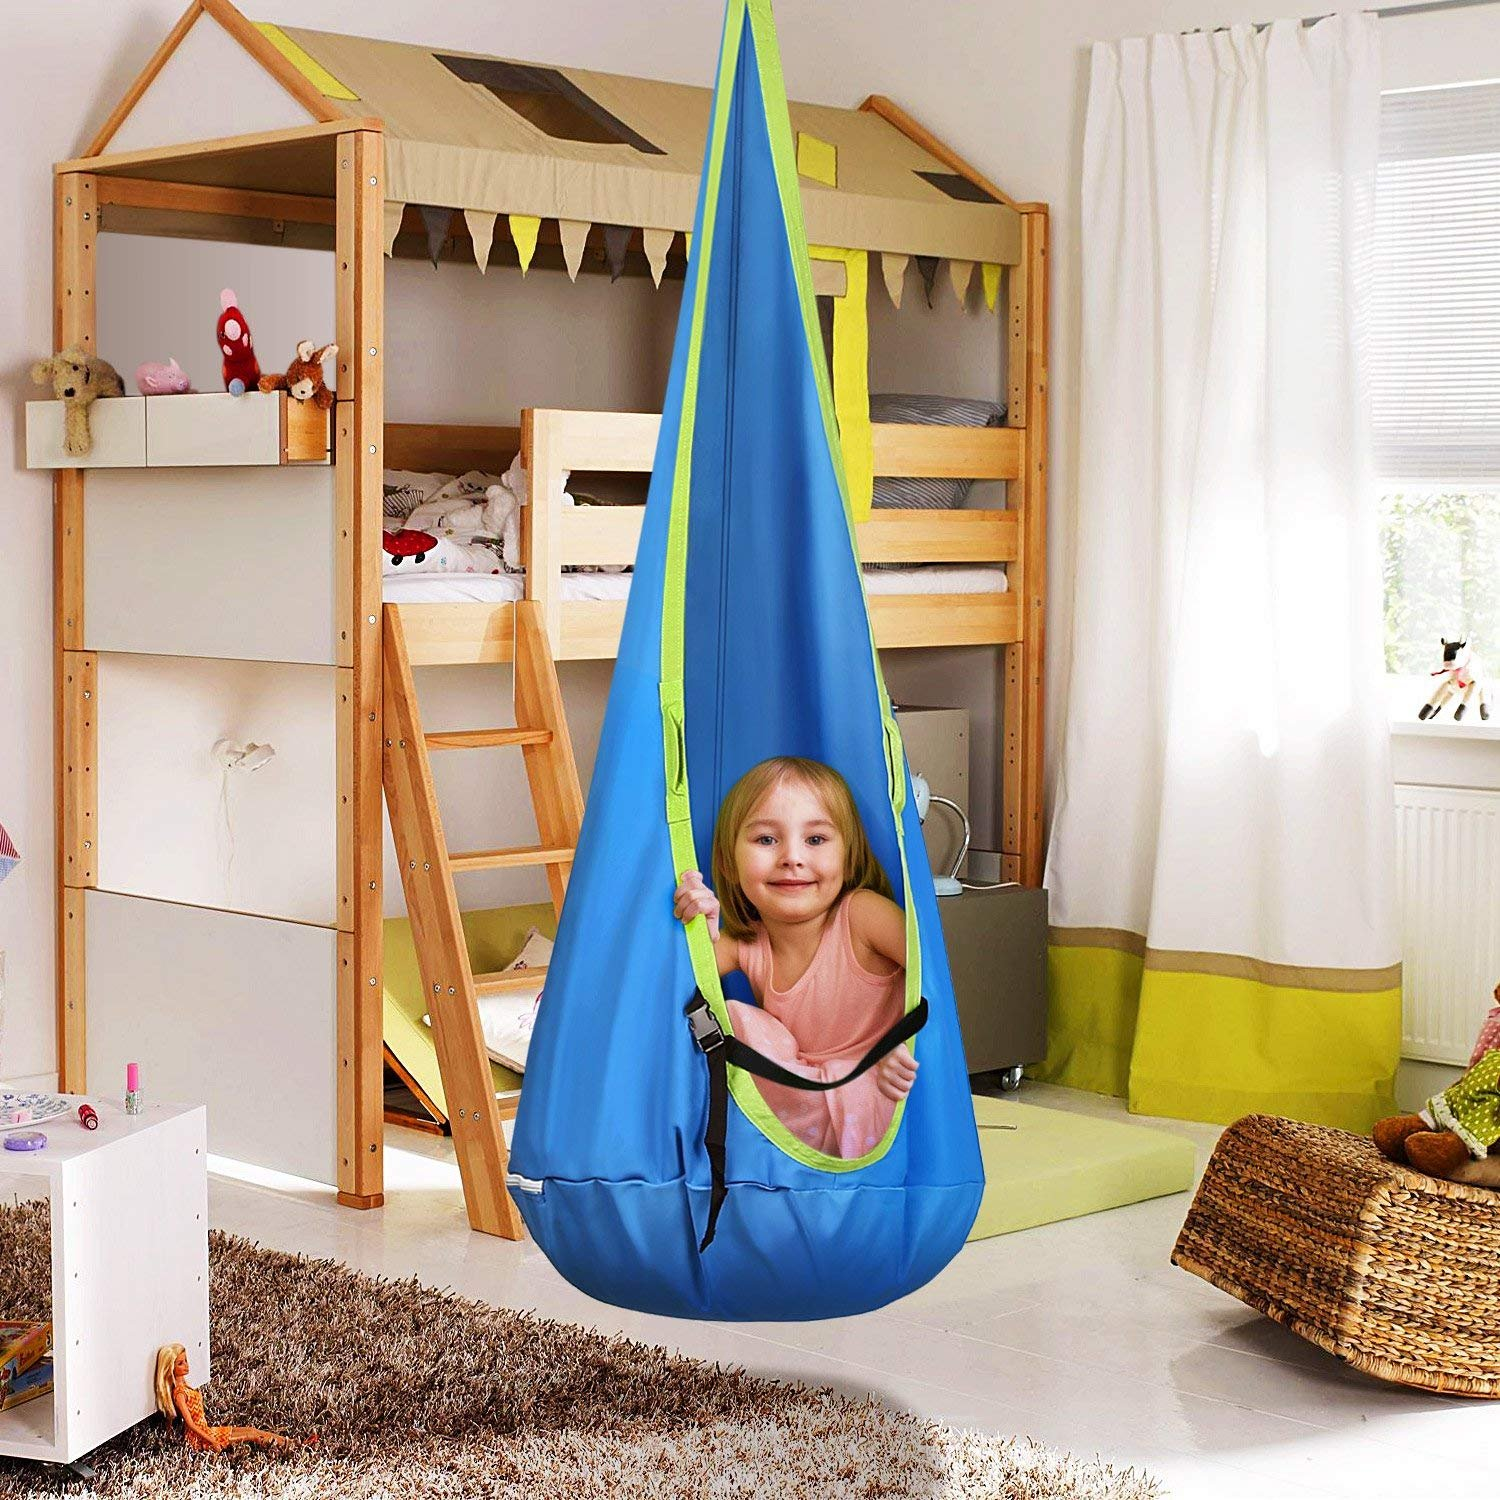 INTEY Hanging Cave Kids Hanging Chair with Hook and Hanging Ropes, Hanging Sack as Cuddly Cave or Gymnastics Unit for Kids, Blue/Green by INTEY-US (Image #6)